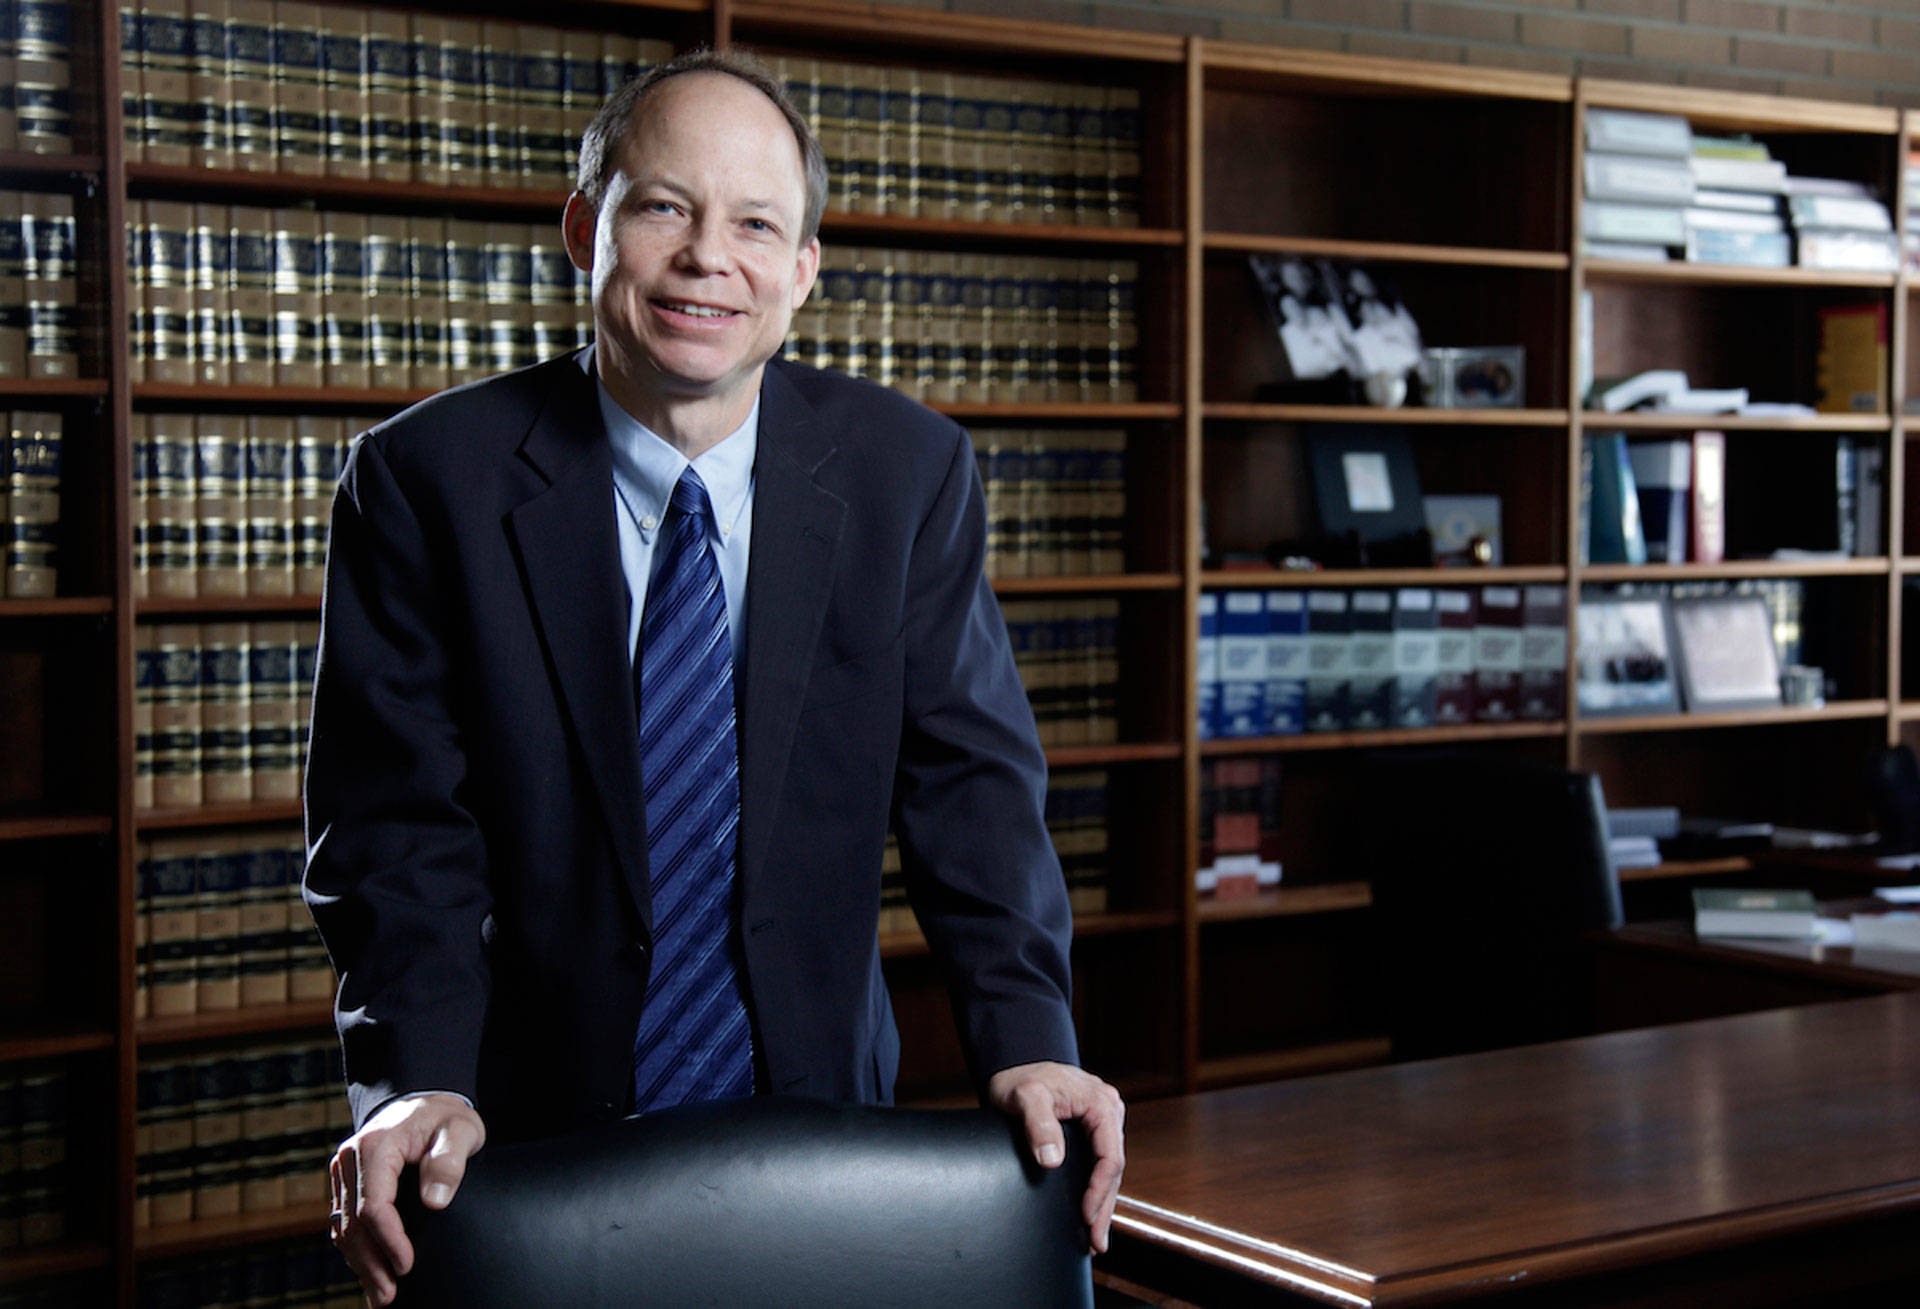 Santa Clara County Judge Aaron Persky faces a potential recall after he sentenced an ex-Stanford University swimmer to six months in jail for sexually assaulting an unconscious woman.